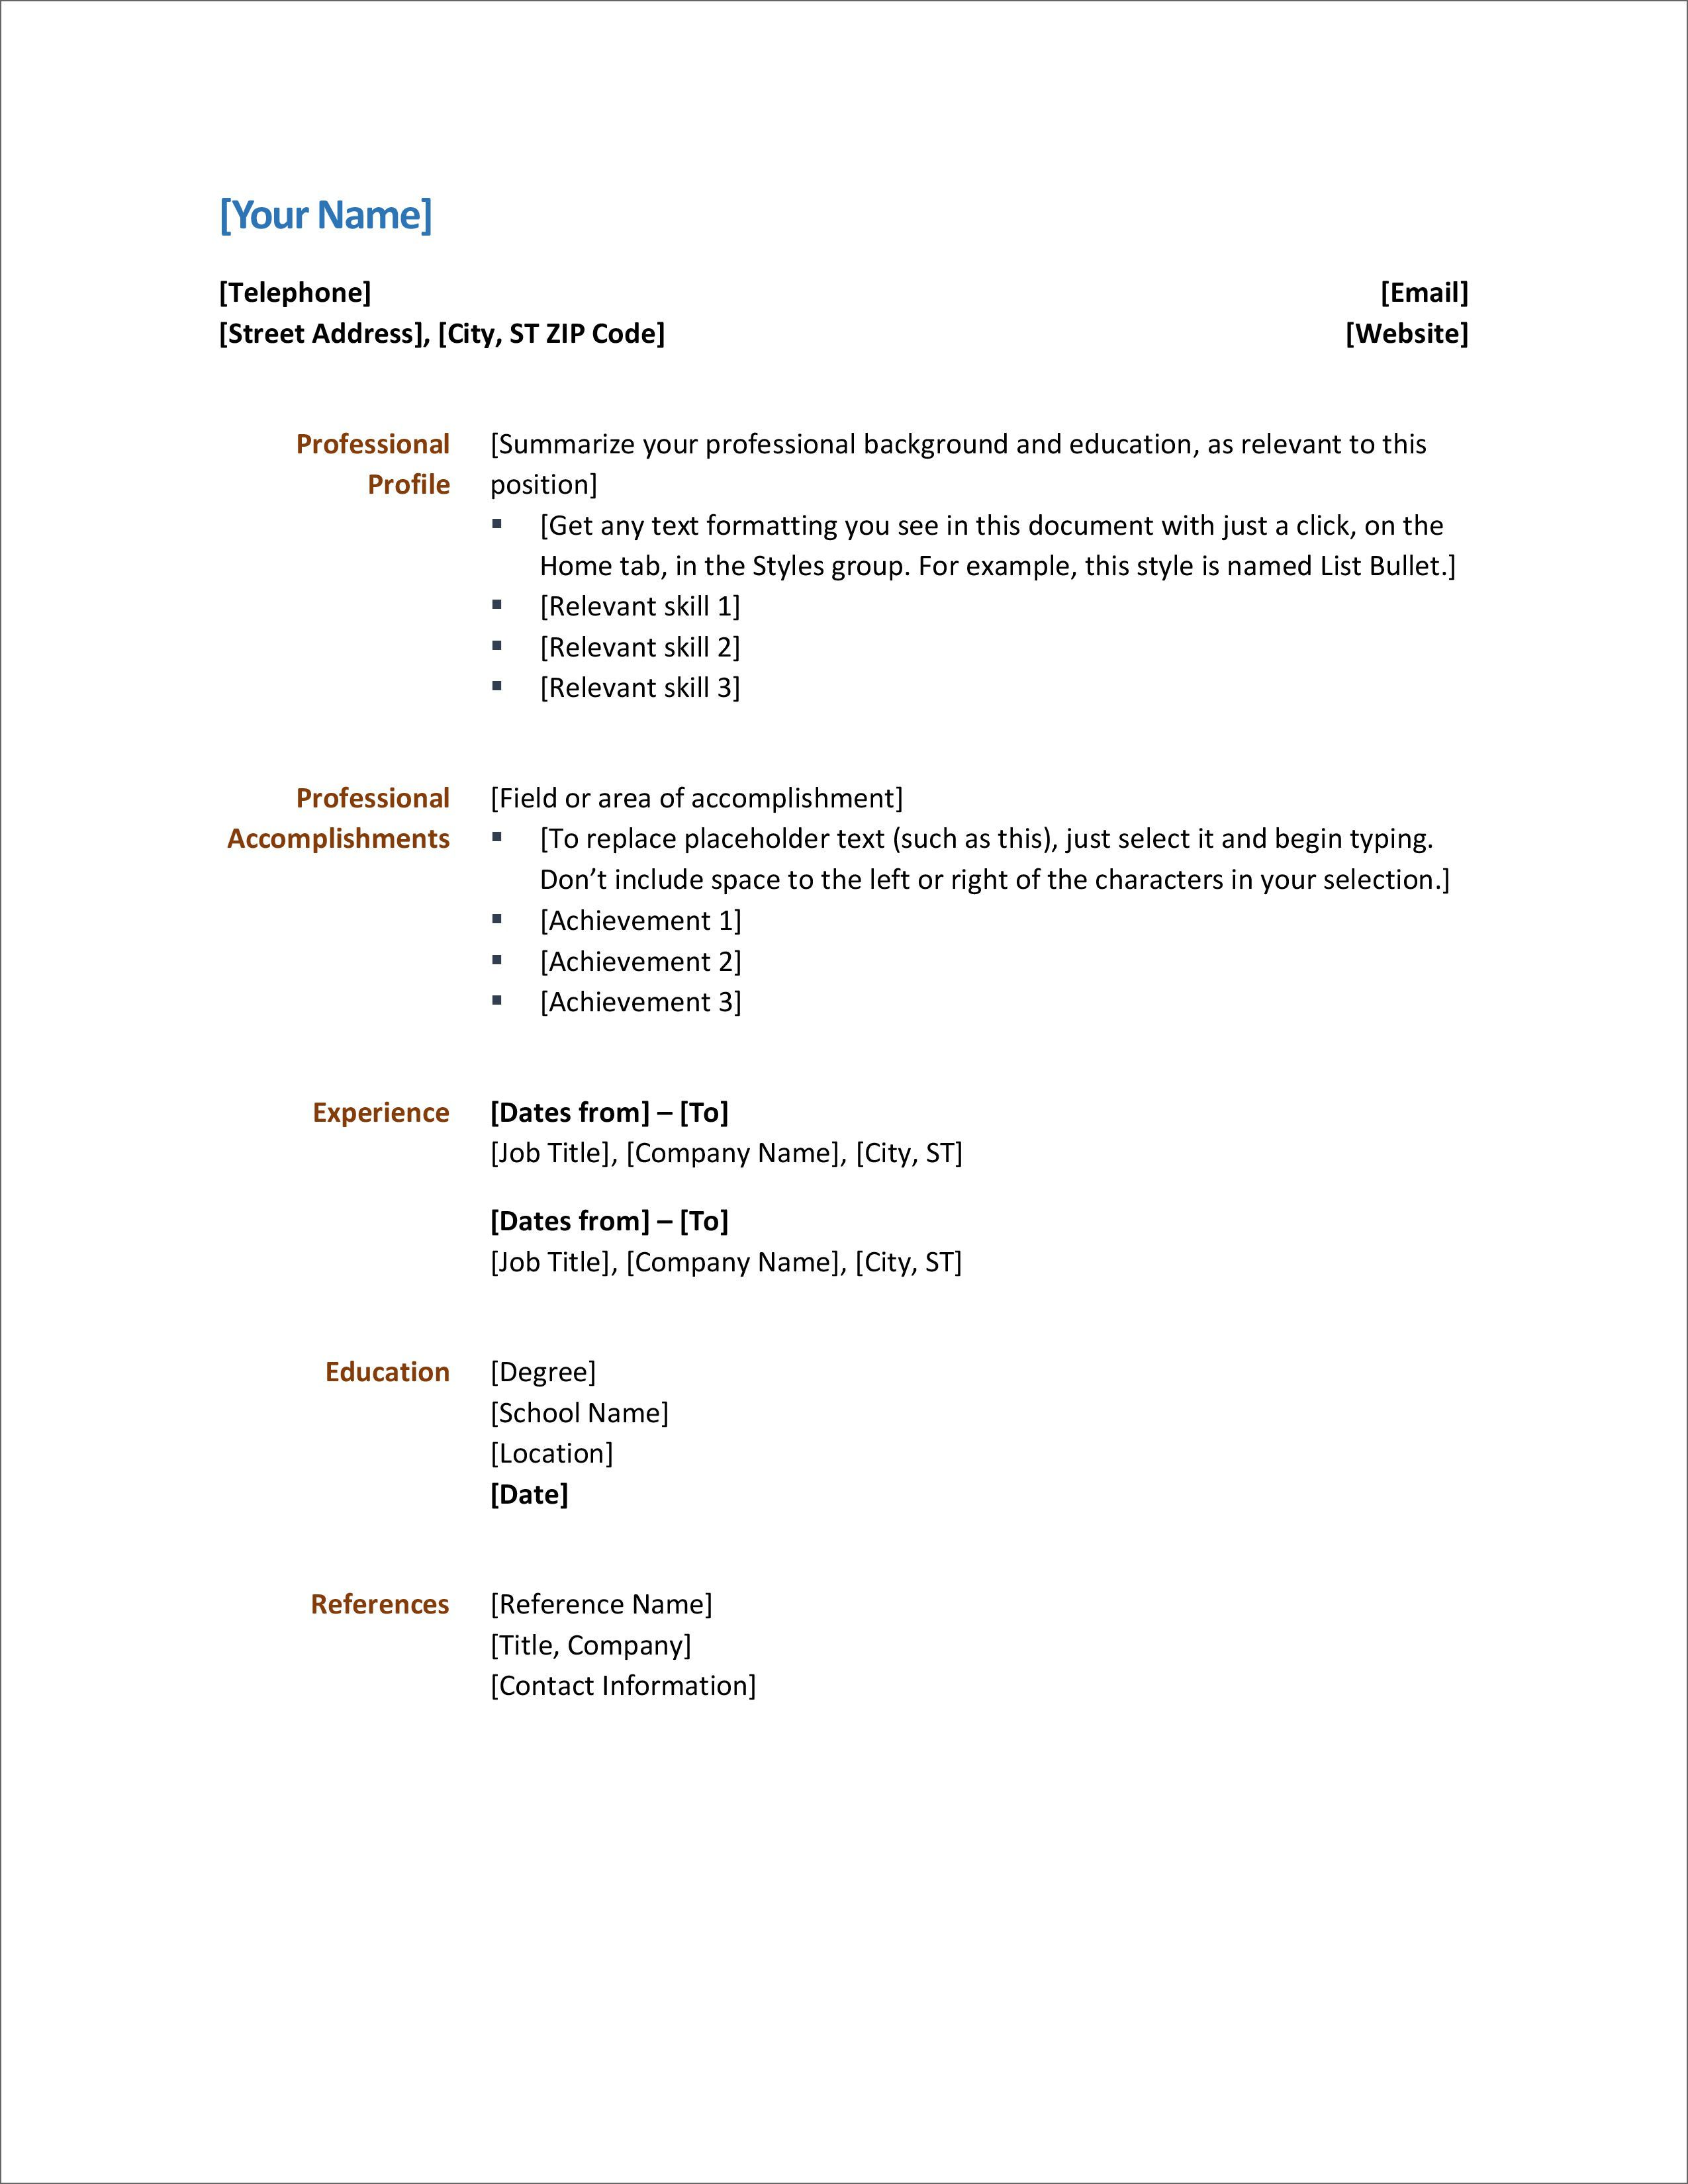 005 Rare Simple Resume Template Download In M Word Image Full